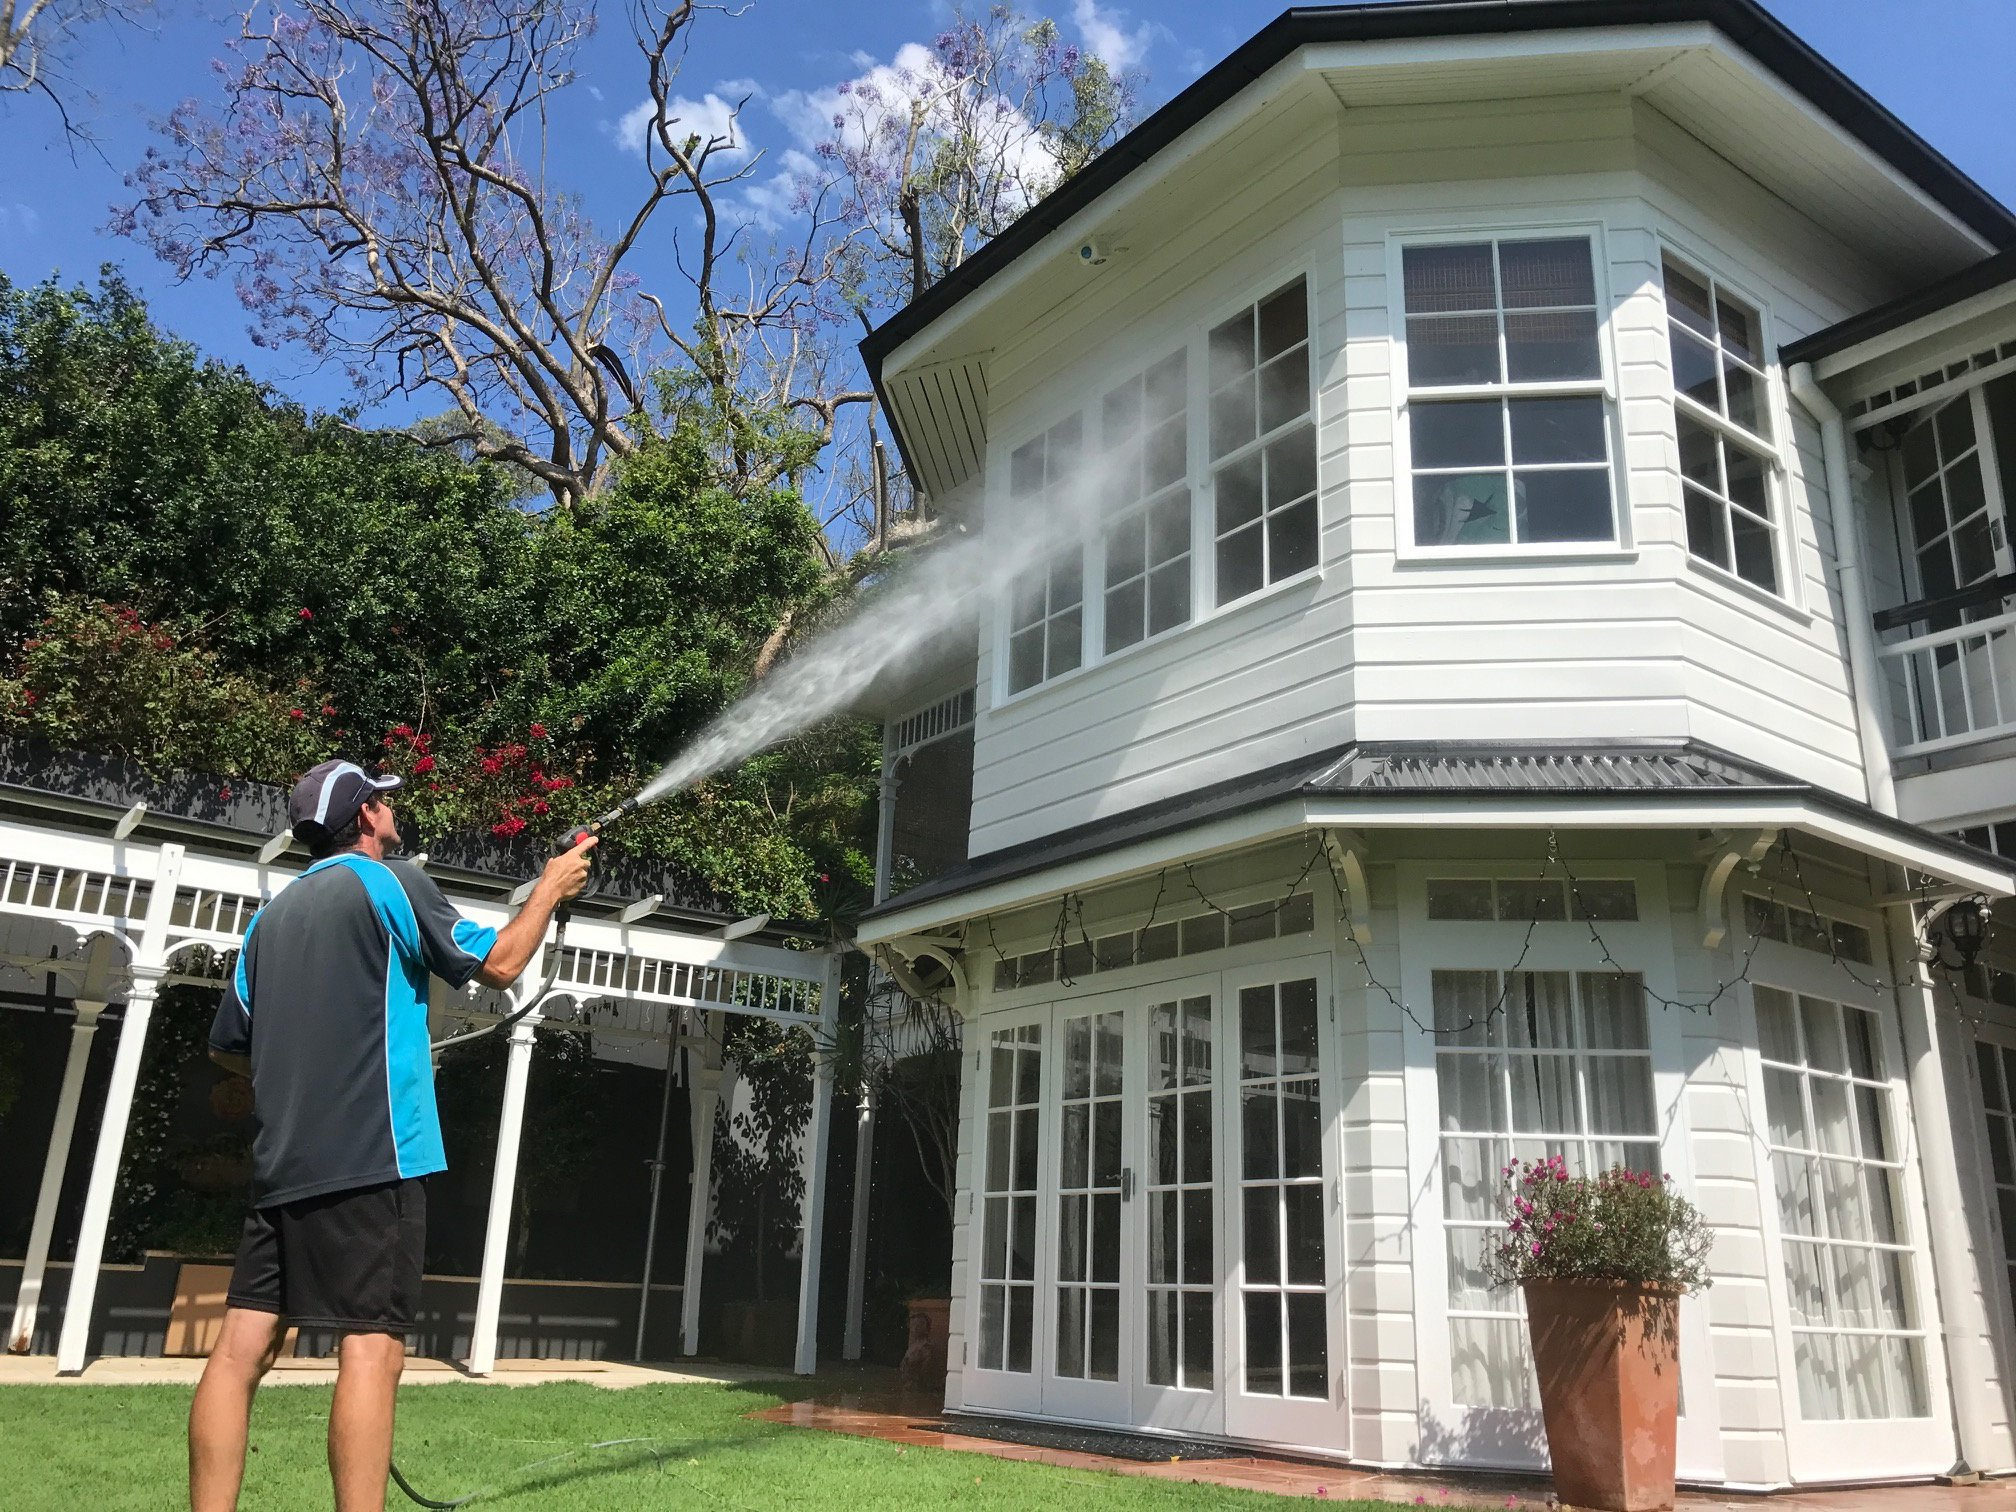 Buderim Roof washing services